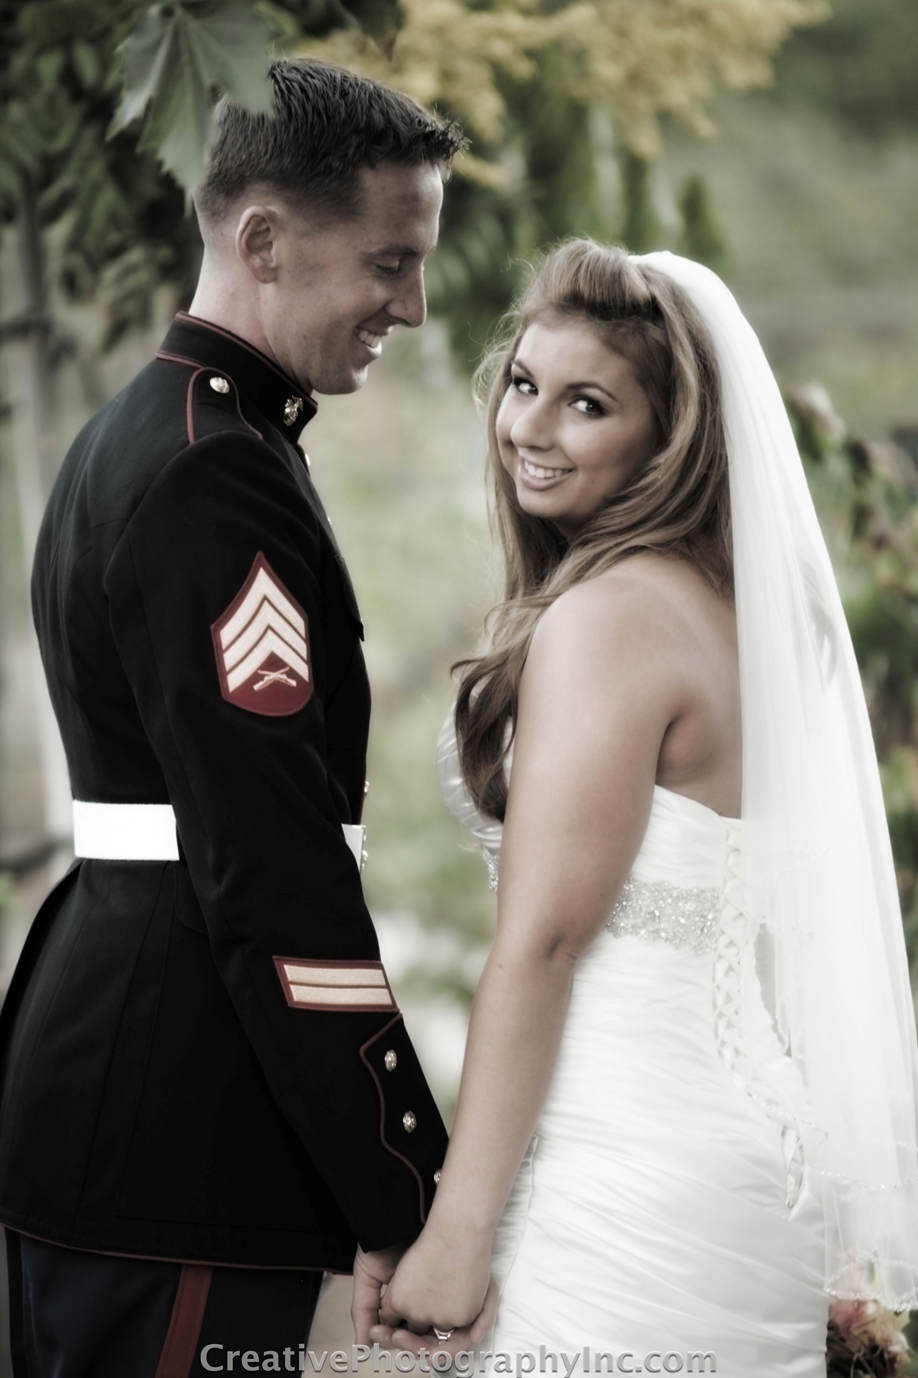 We Love Our Marine Couples Wedding Photos Couples In Love Wedding Bells [ 1378 x 918 Pixel ]